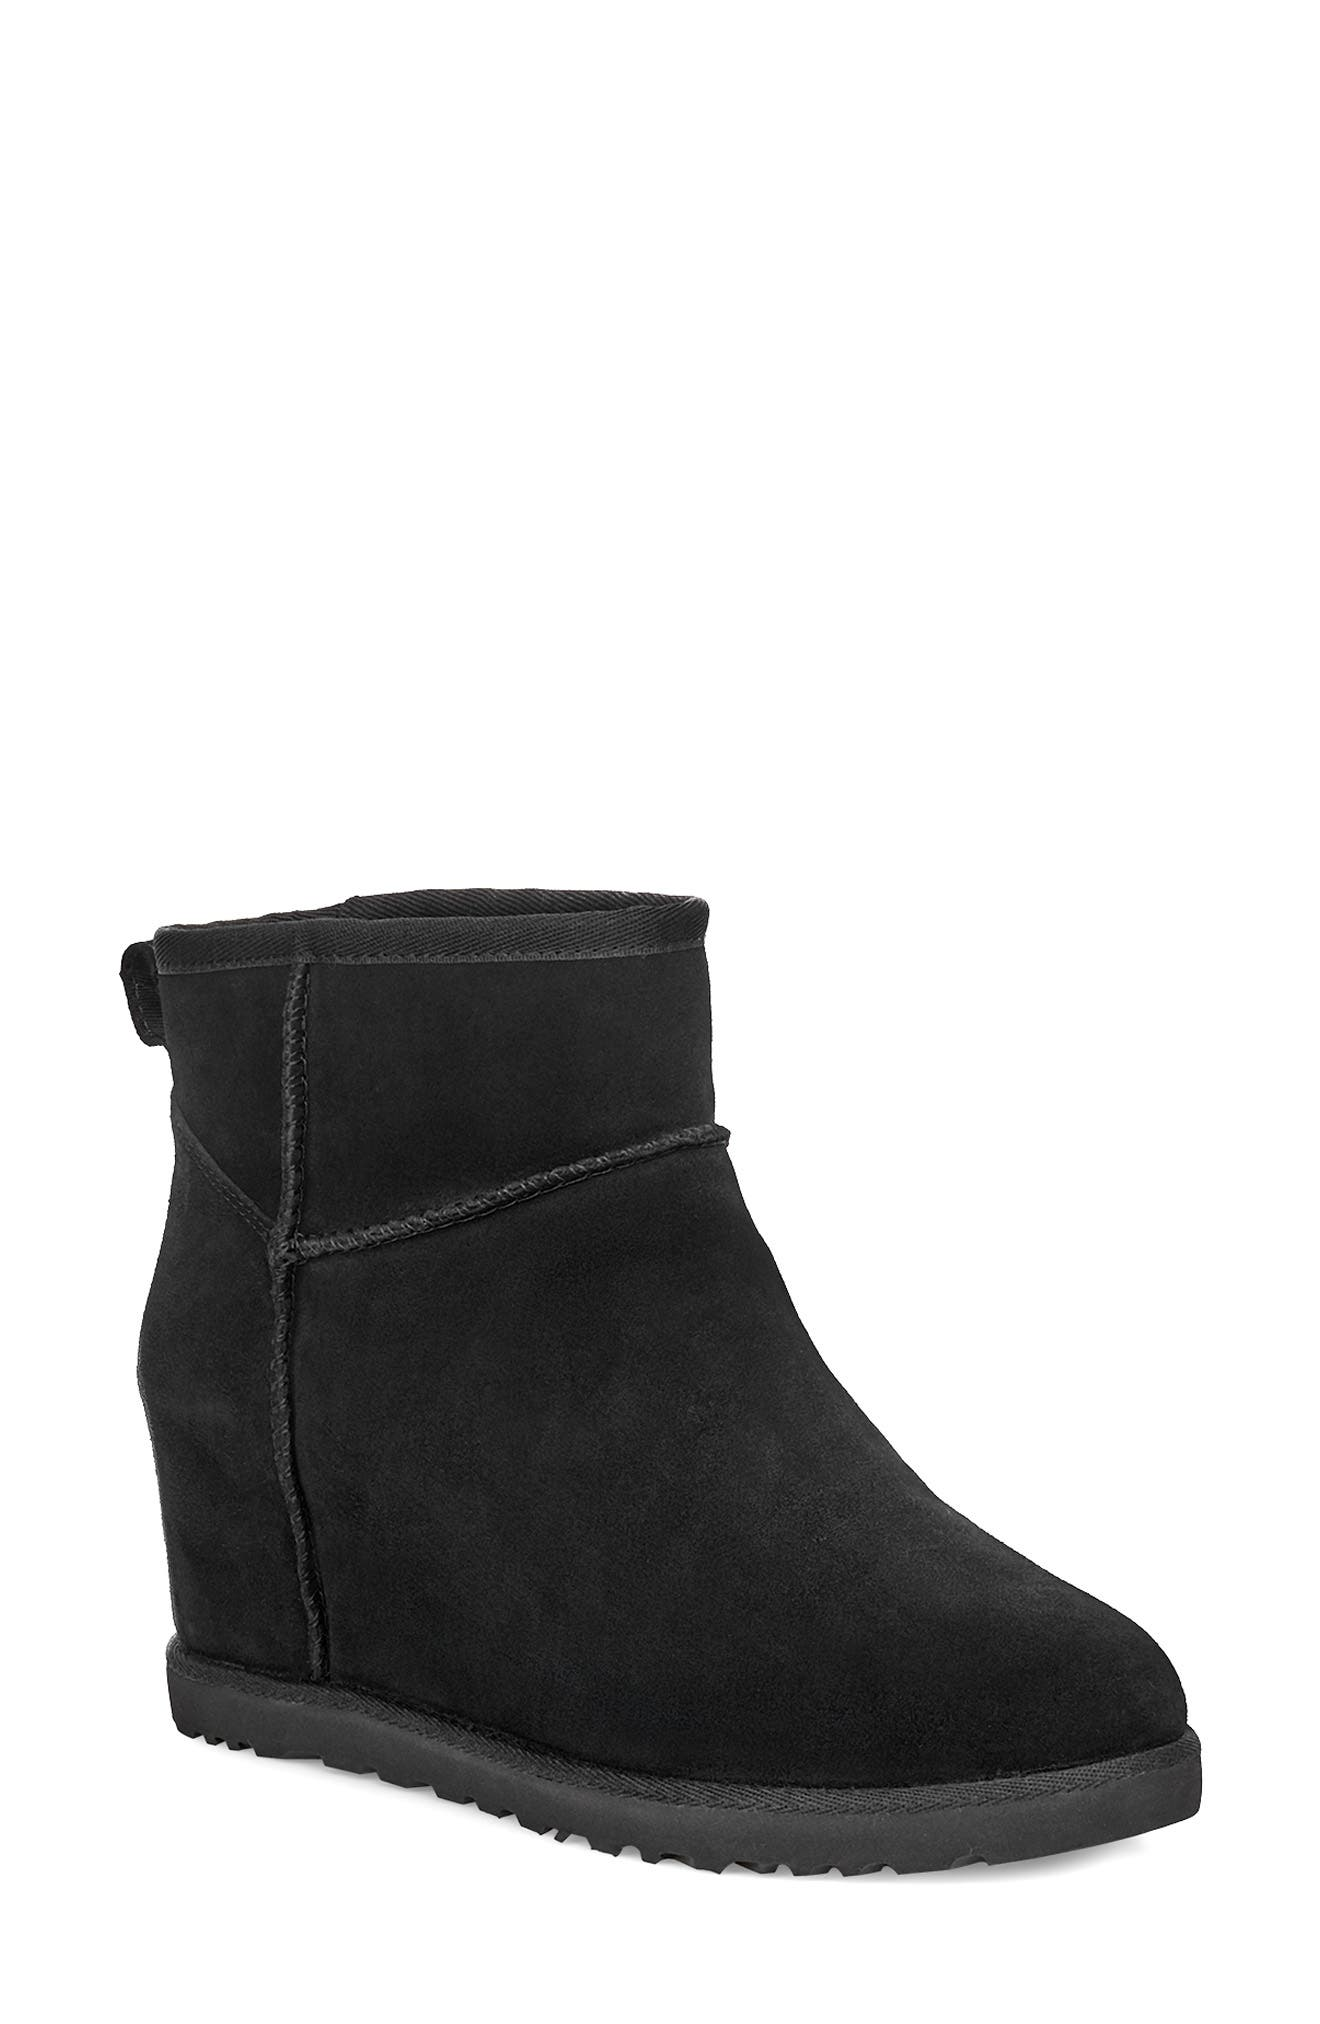 0893e0e7ffc Women's UGG® Booties & Ankle Boots | Nordstrom